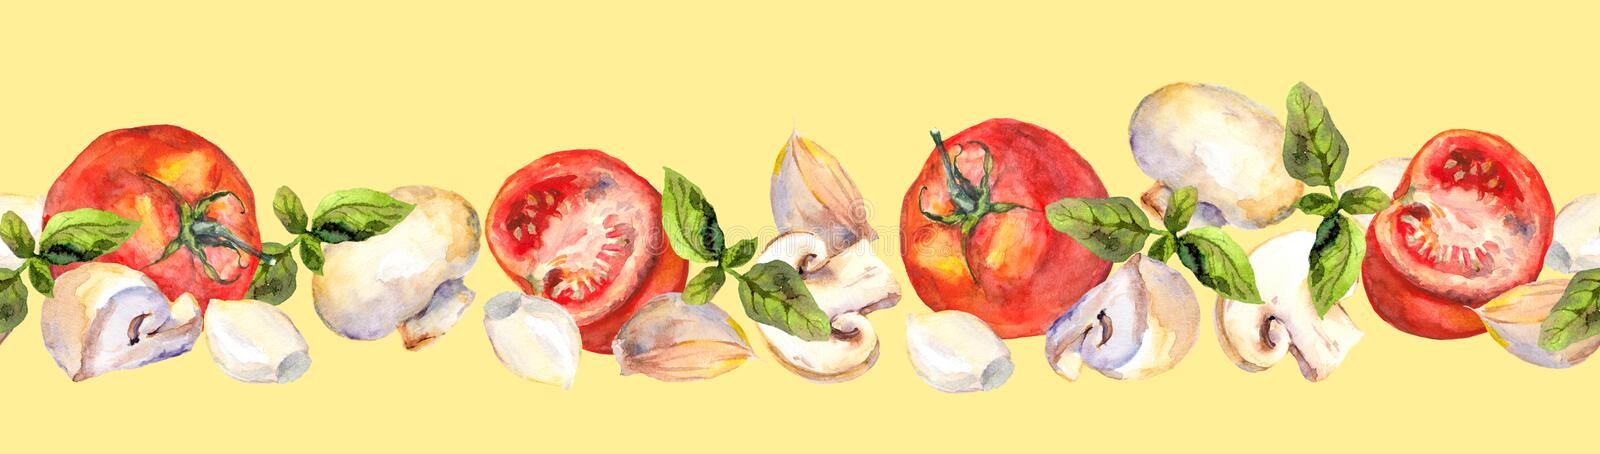 Patterned background with vegetarian vegetables: tomatoes, mushrooms, garlic and basil. Seamless background with tomatoes, mushrooms, garlic and basil for stock illustration